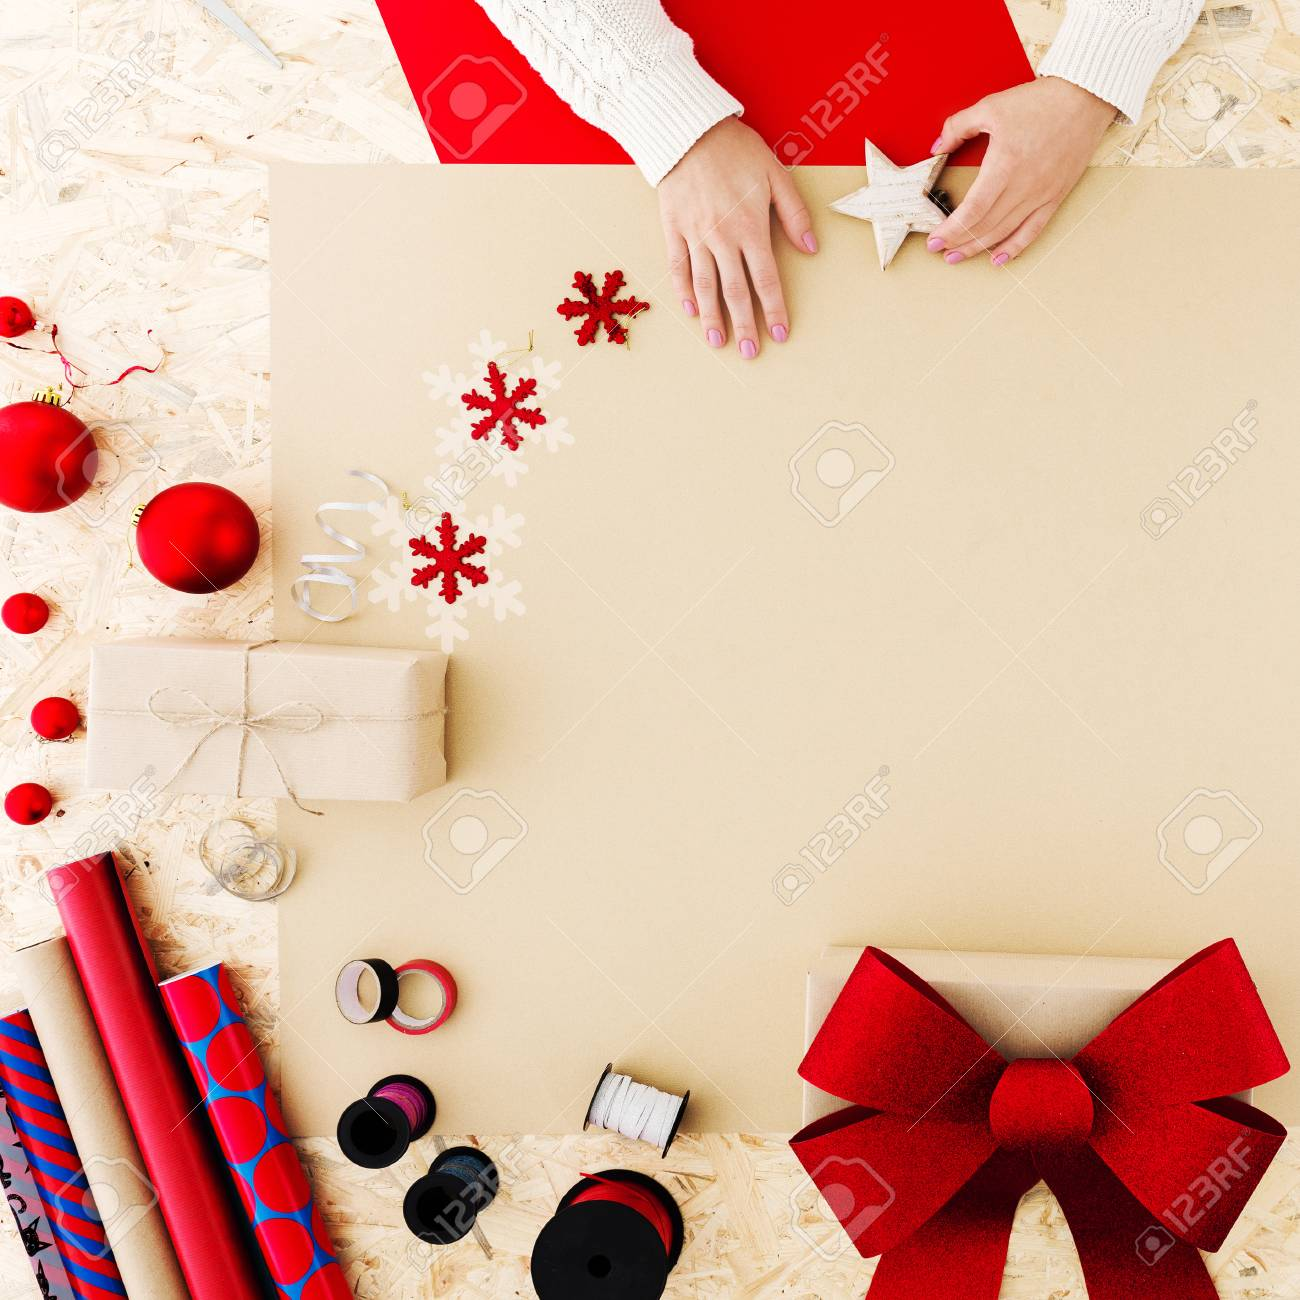 Colorful Christmas Accessories To Wrap Christmas Presents Stock ...